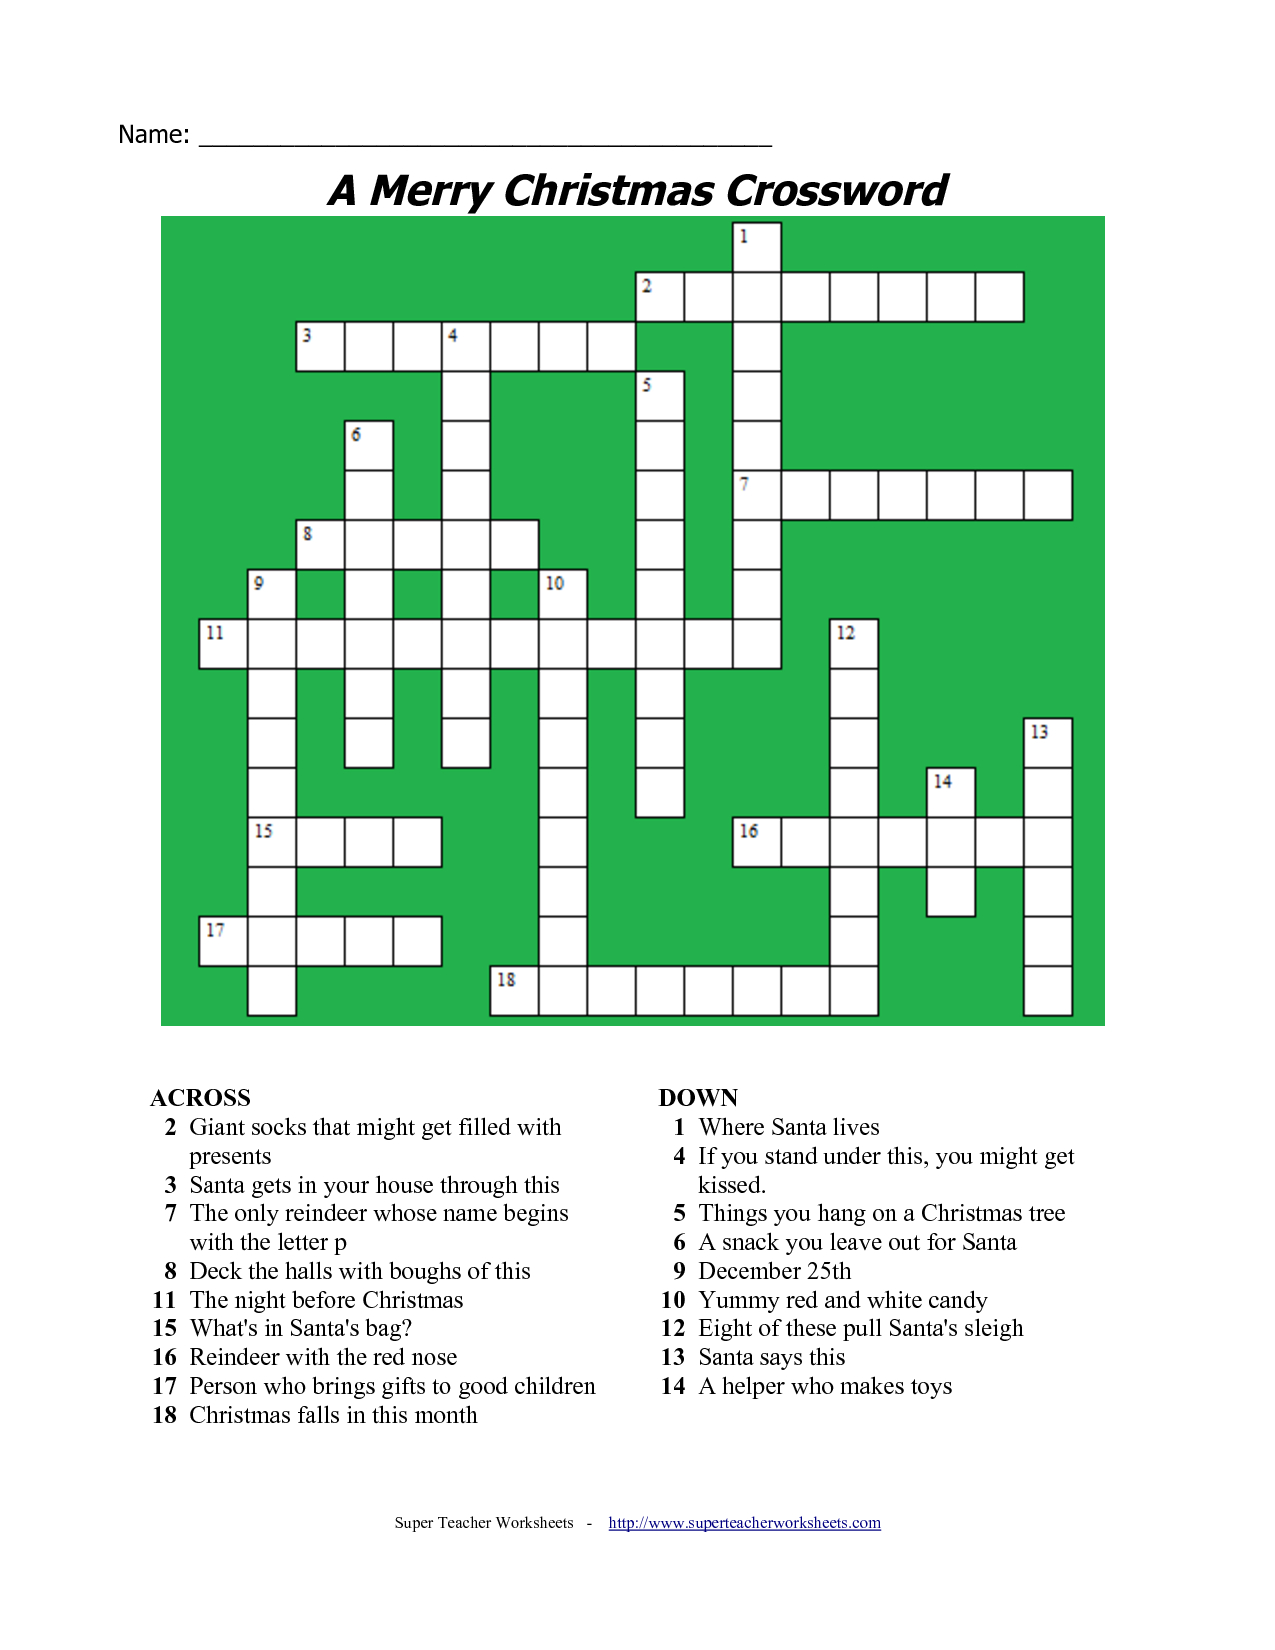 20 Fun Printable Christmas Crossword Puzzles | Kittybabylove - Printable Christmas Crossword Puzzles With Answers